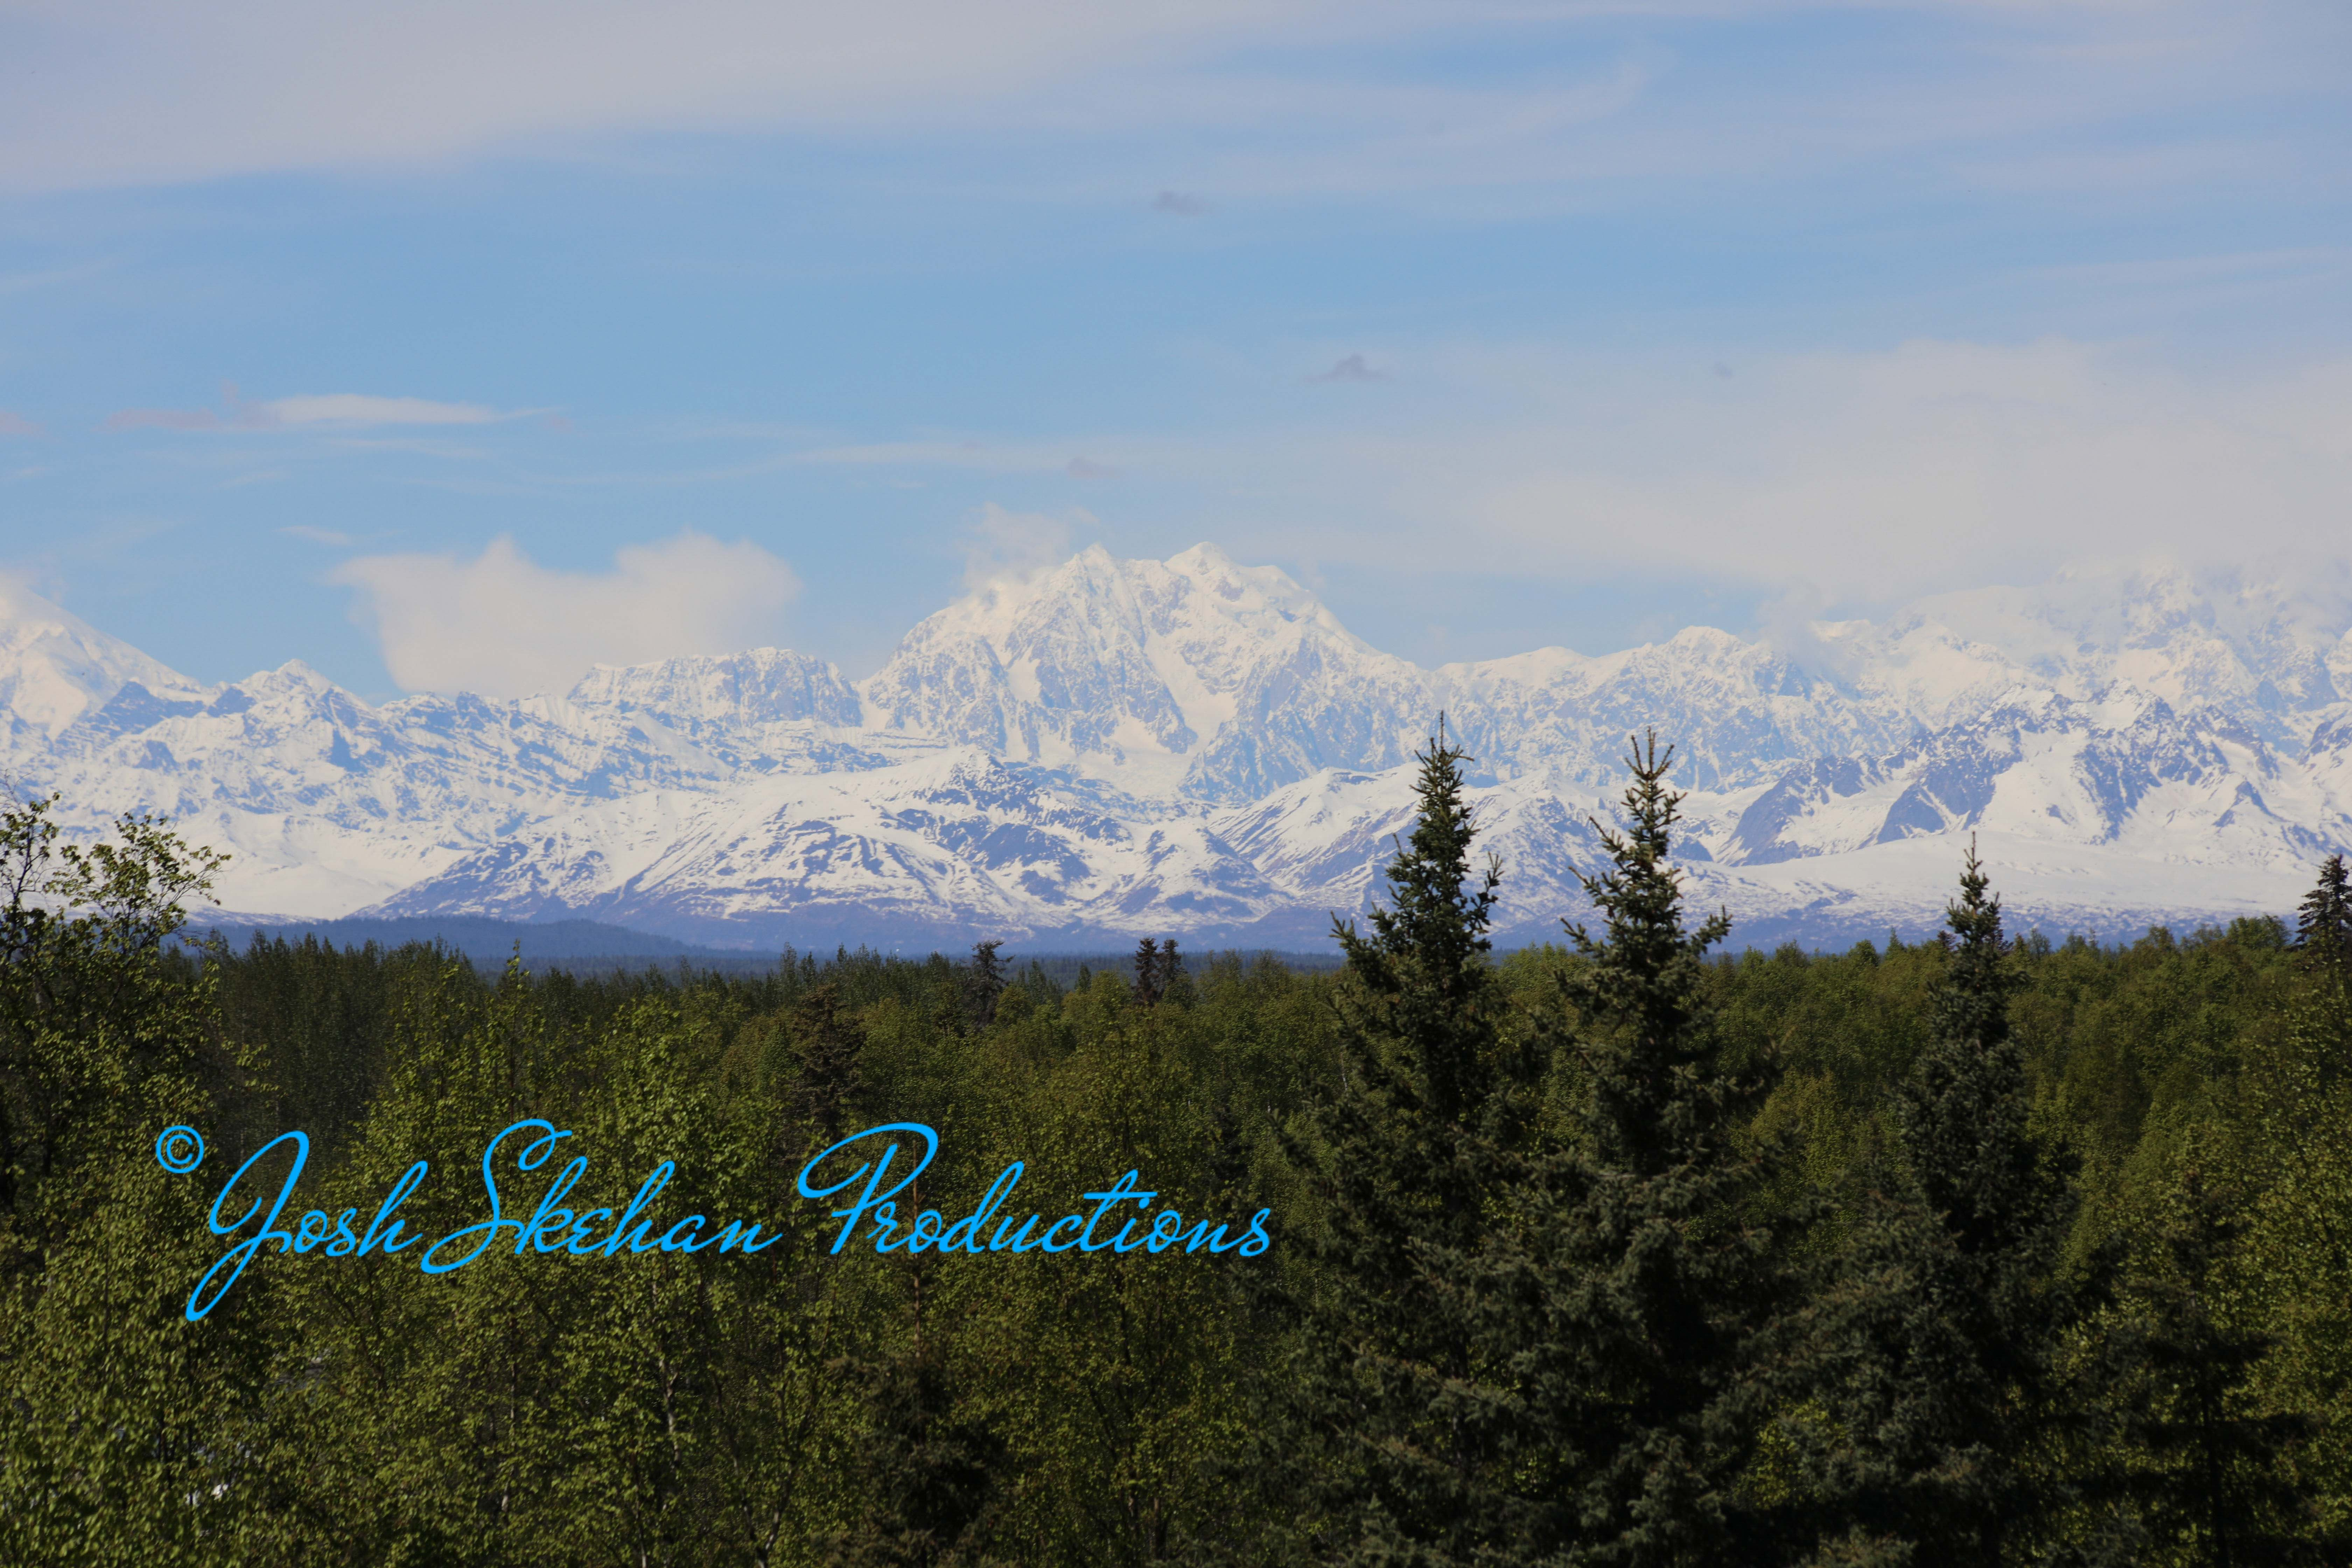 61 arizona photographer in talkeetna ala